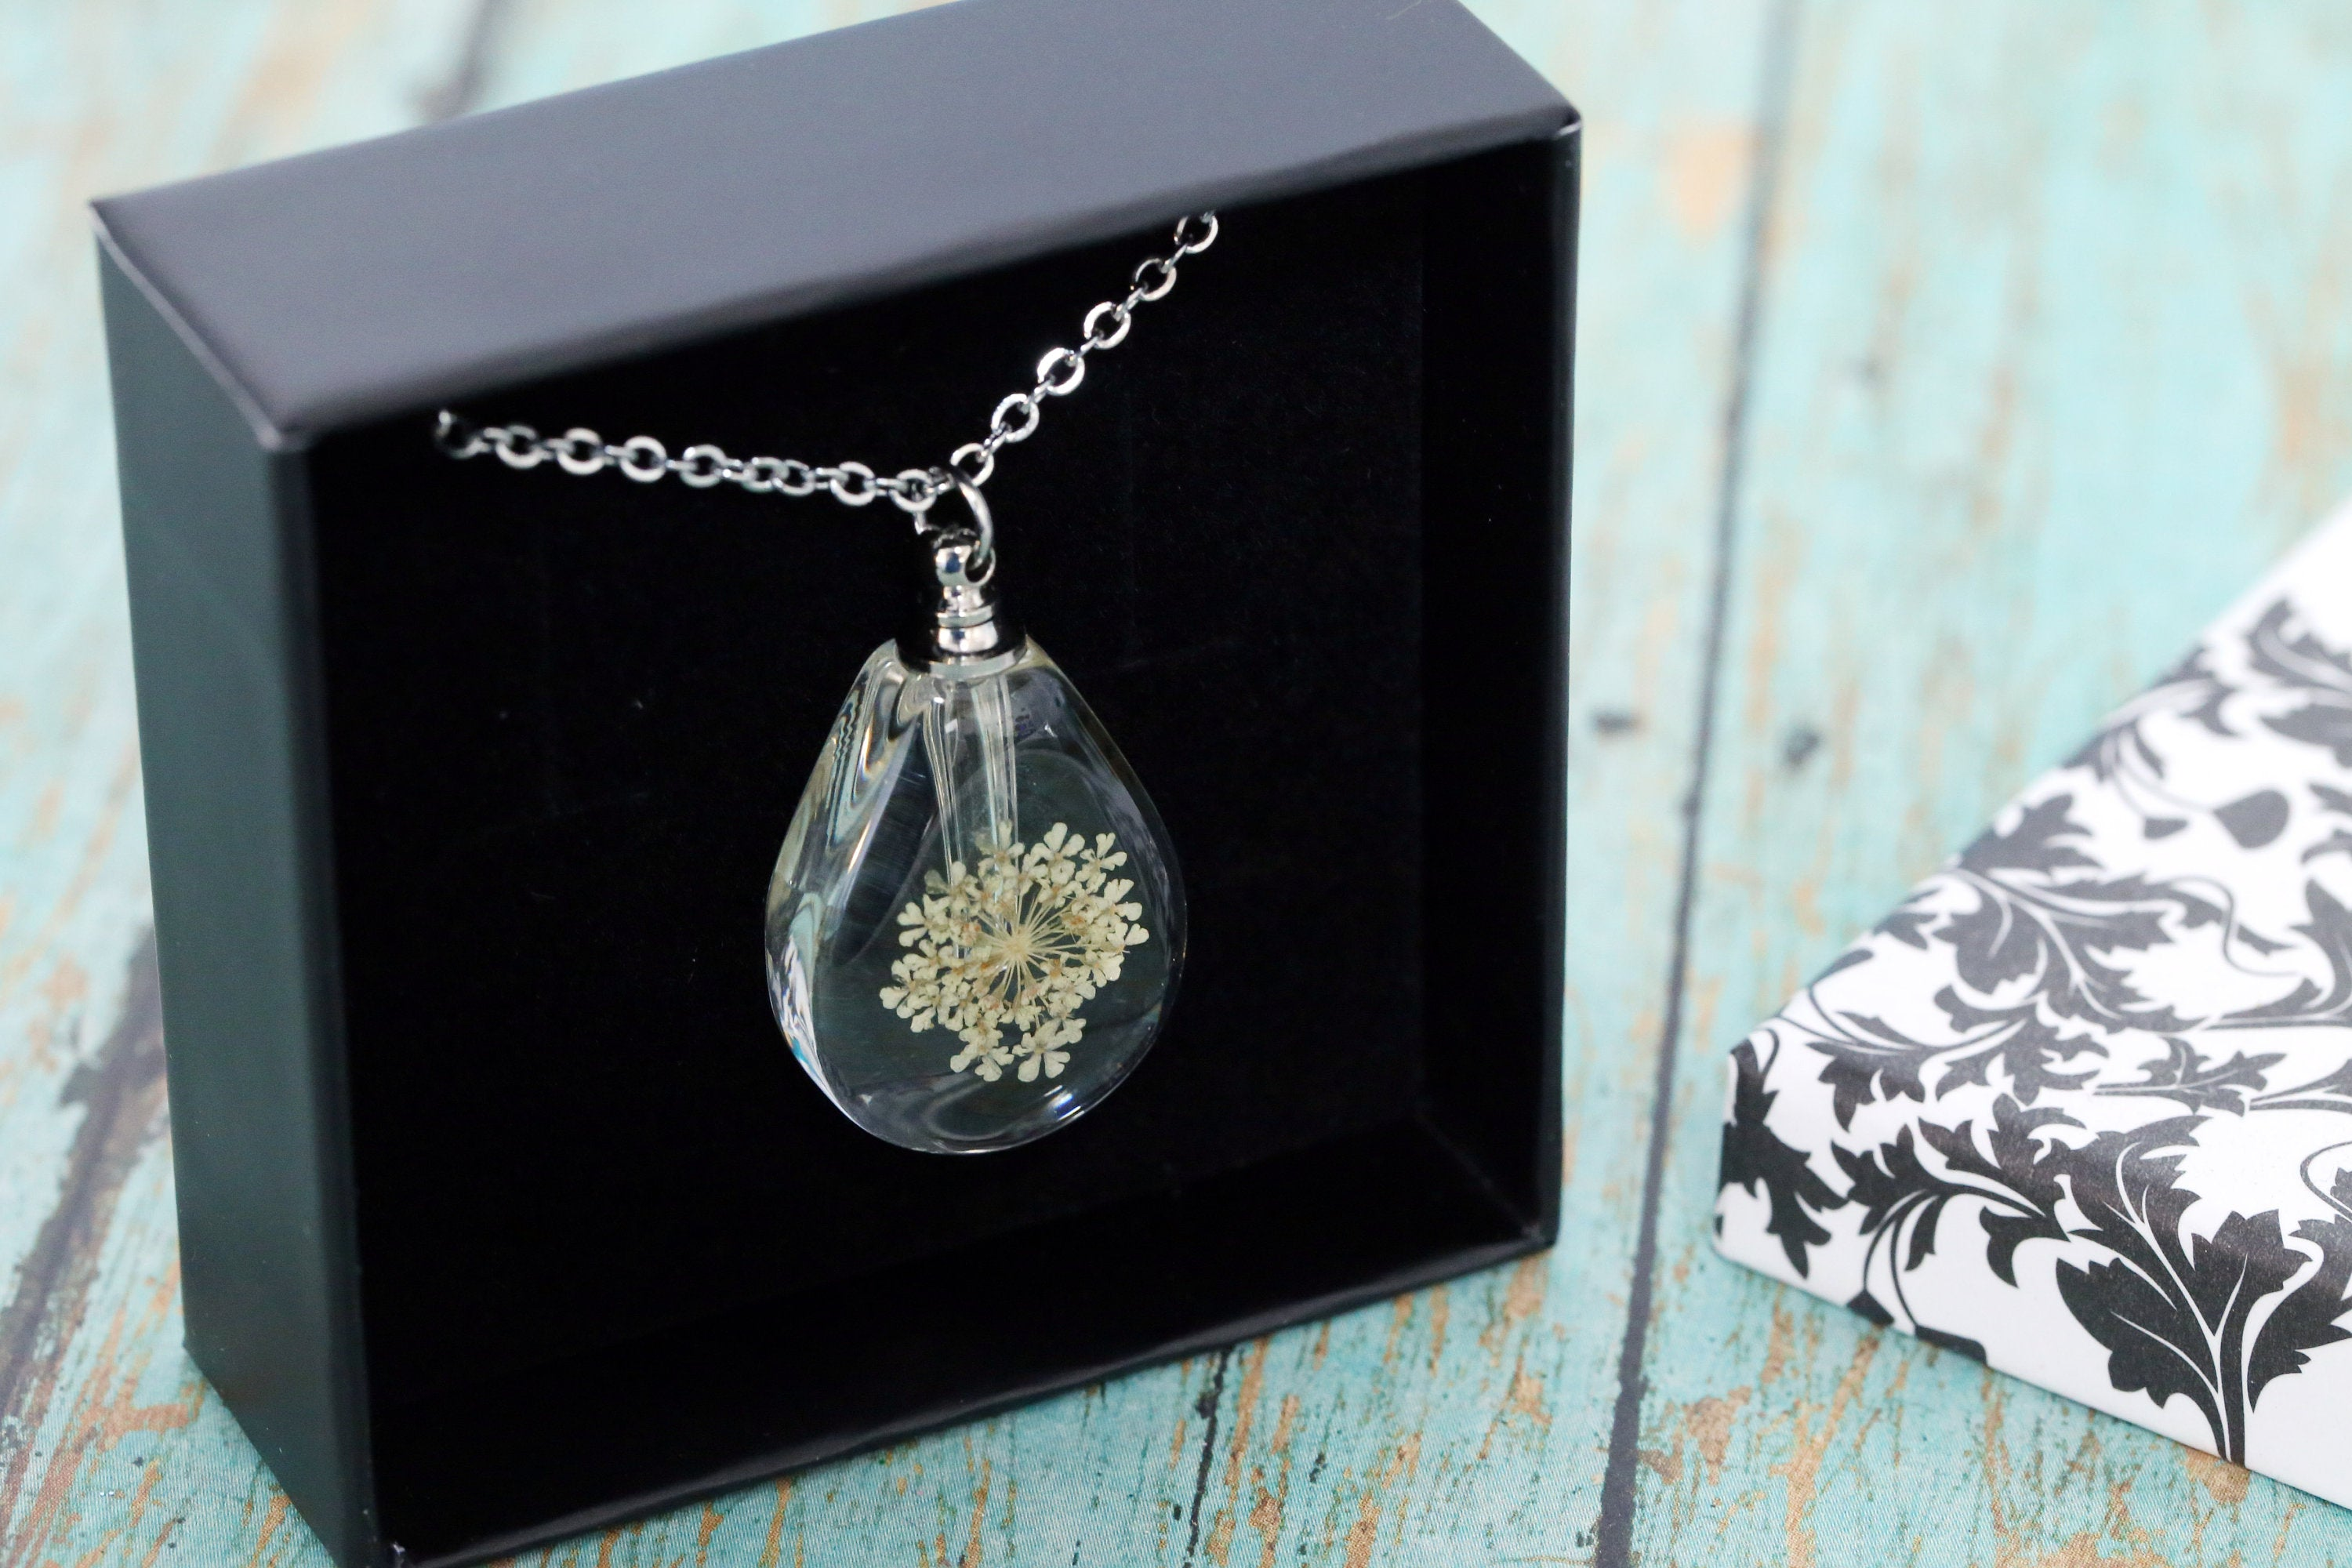 Stainless and Resin Memorial Teardrop Urn Pendant with Off White Dried Flowers - Cremation Jewelry- Ash Necklace -Urn Necklace-Vial Necklace